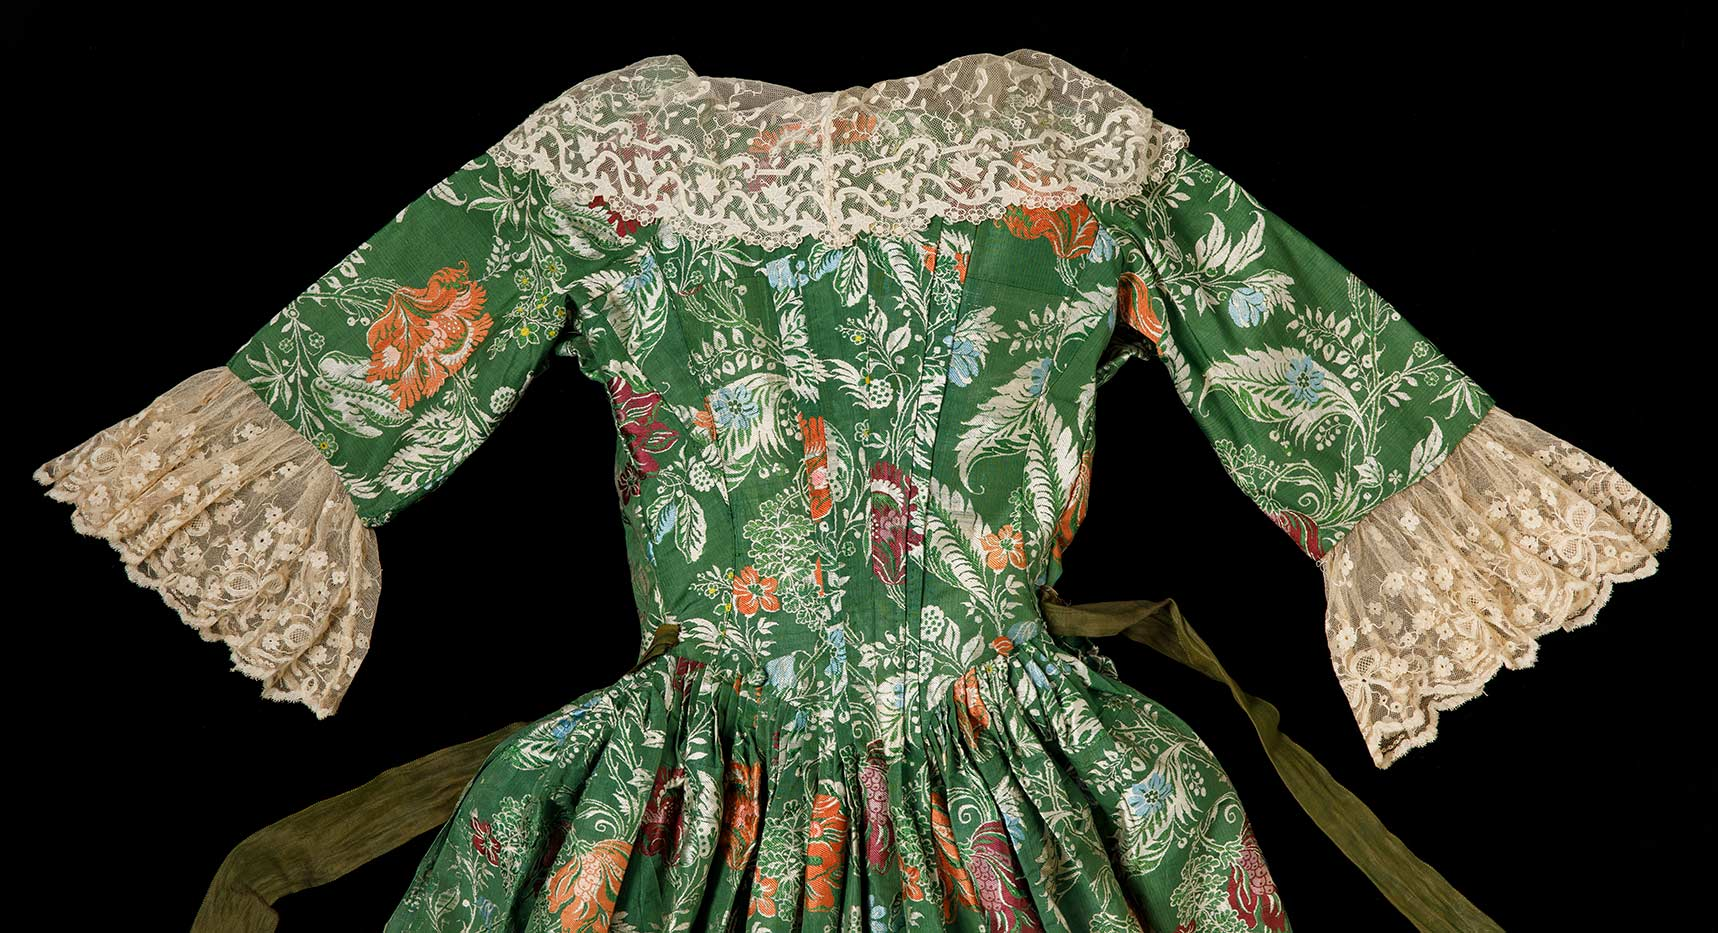 A detail image of the top part of the back of a green and floral dress with lace trim on the sleeves and collar with a long green sash like belt stitched at the waist. - click to view larger image